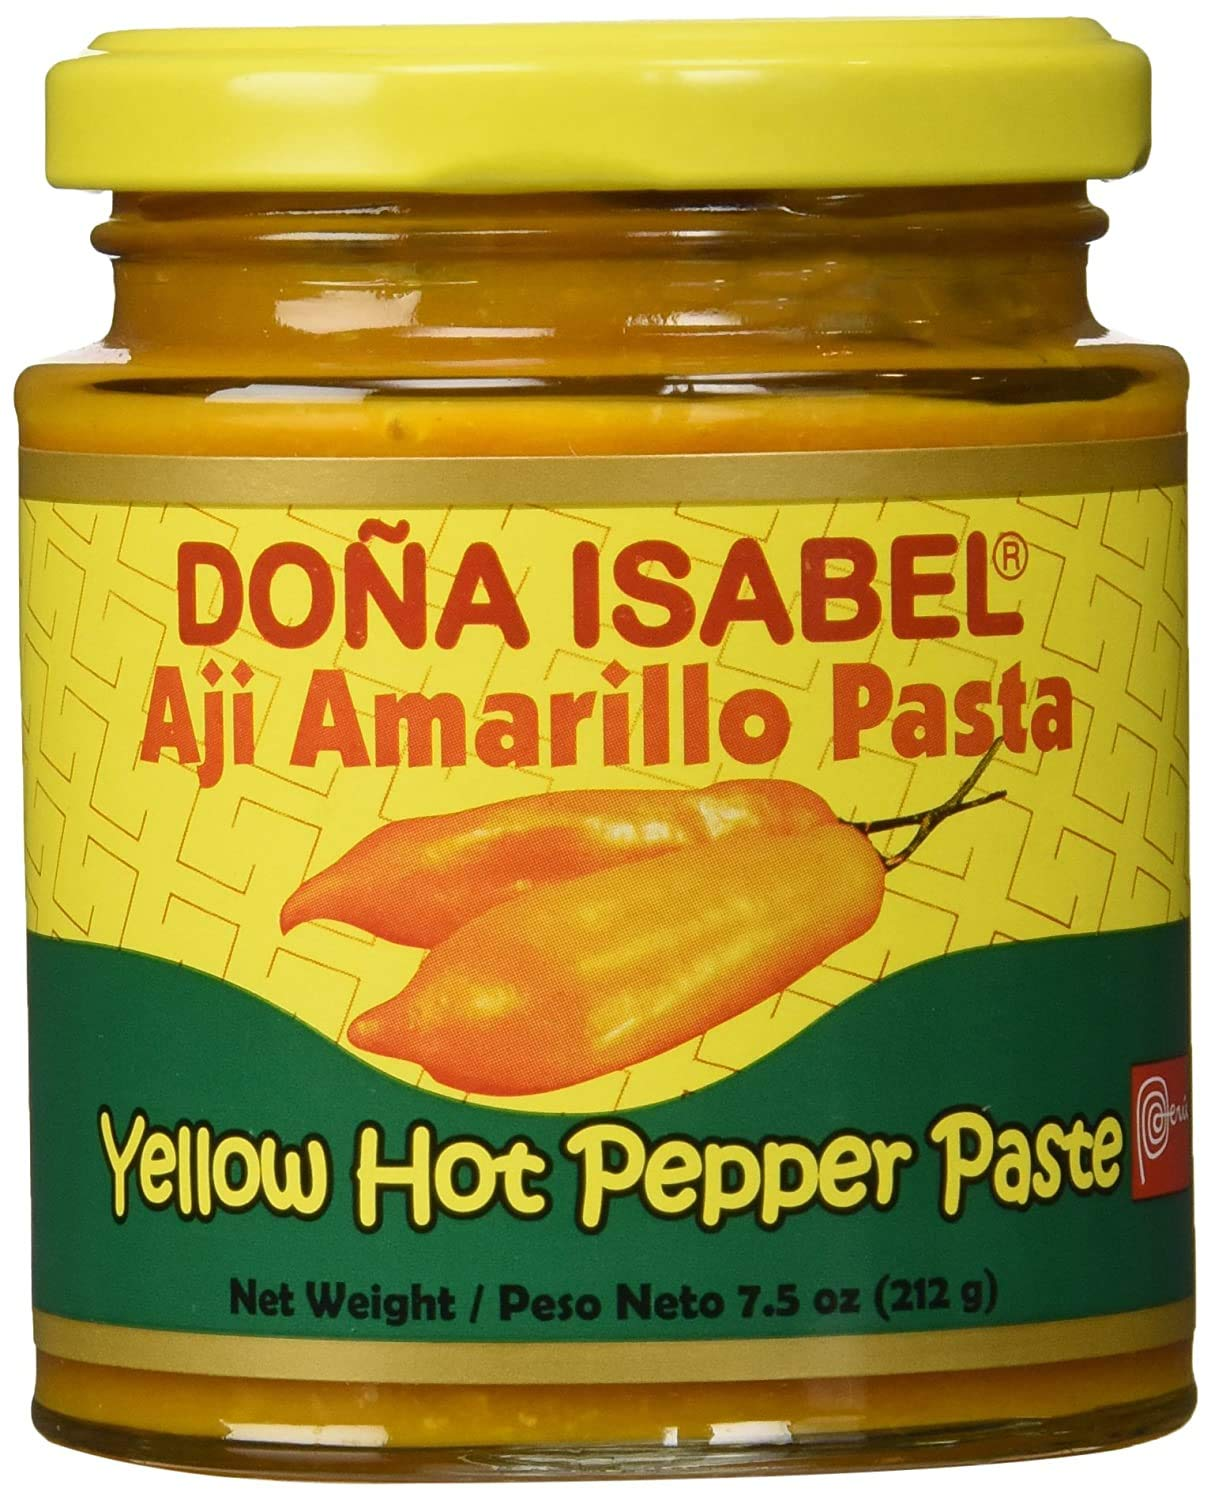 Dona Isabel Aji Amarillo Paste - Hot Yellow Pepper Paste - 7.5 Ounces - Product of Peru - 2 PACK